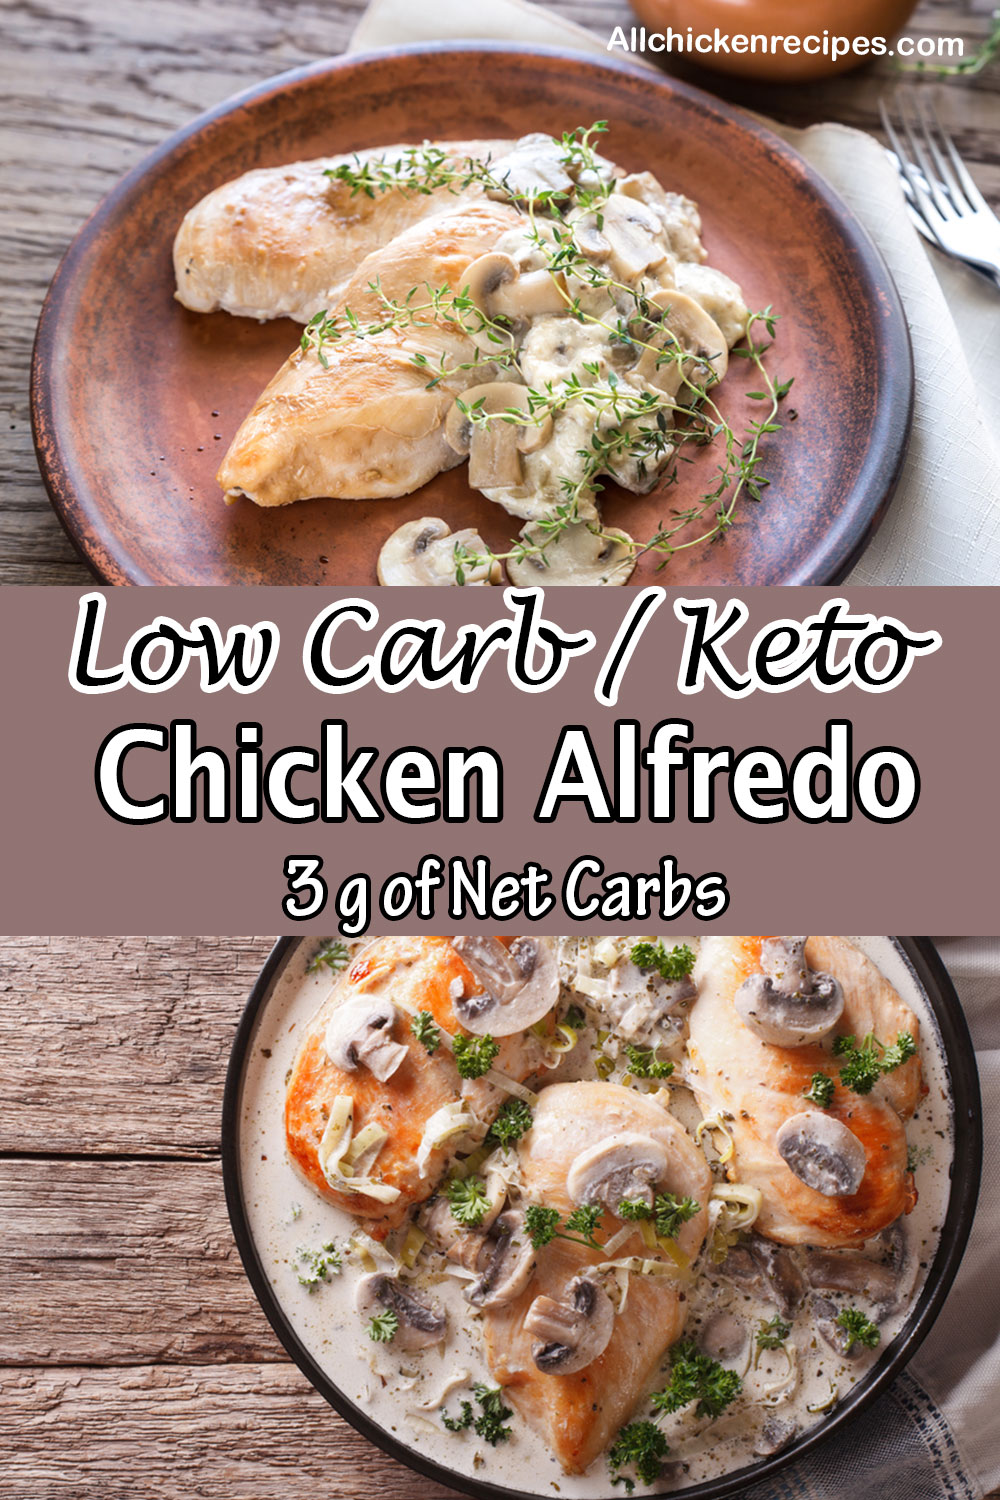 Low Carb Keto Chicken Alfredo